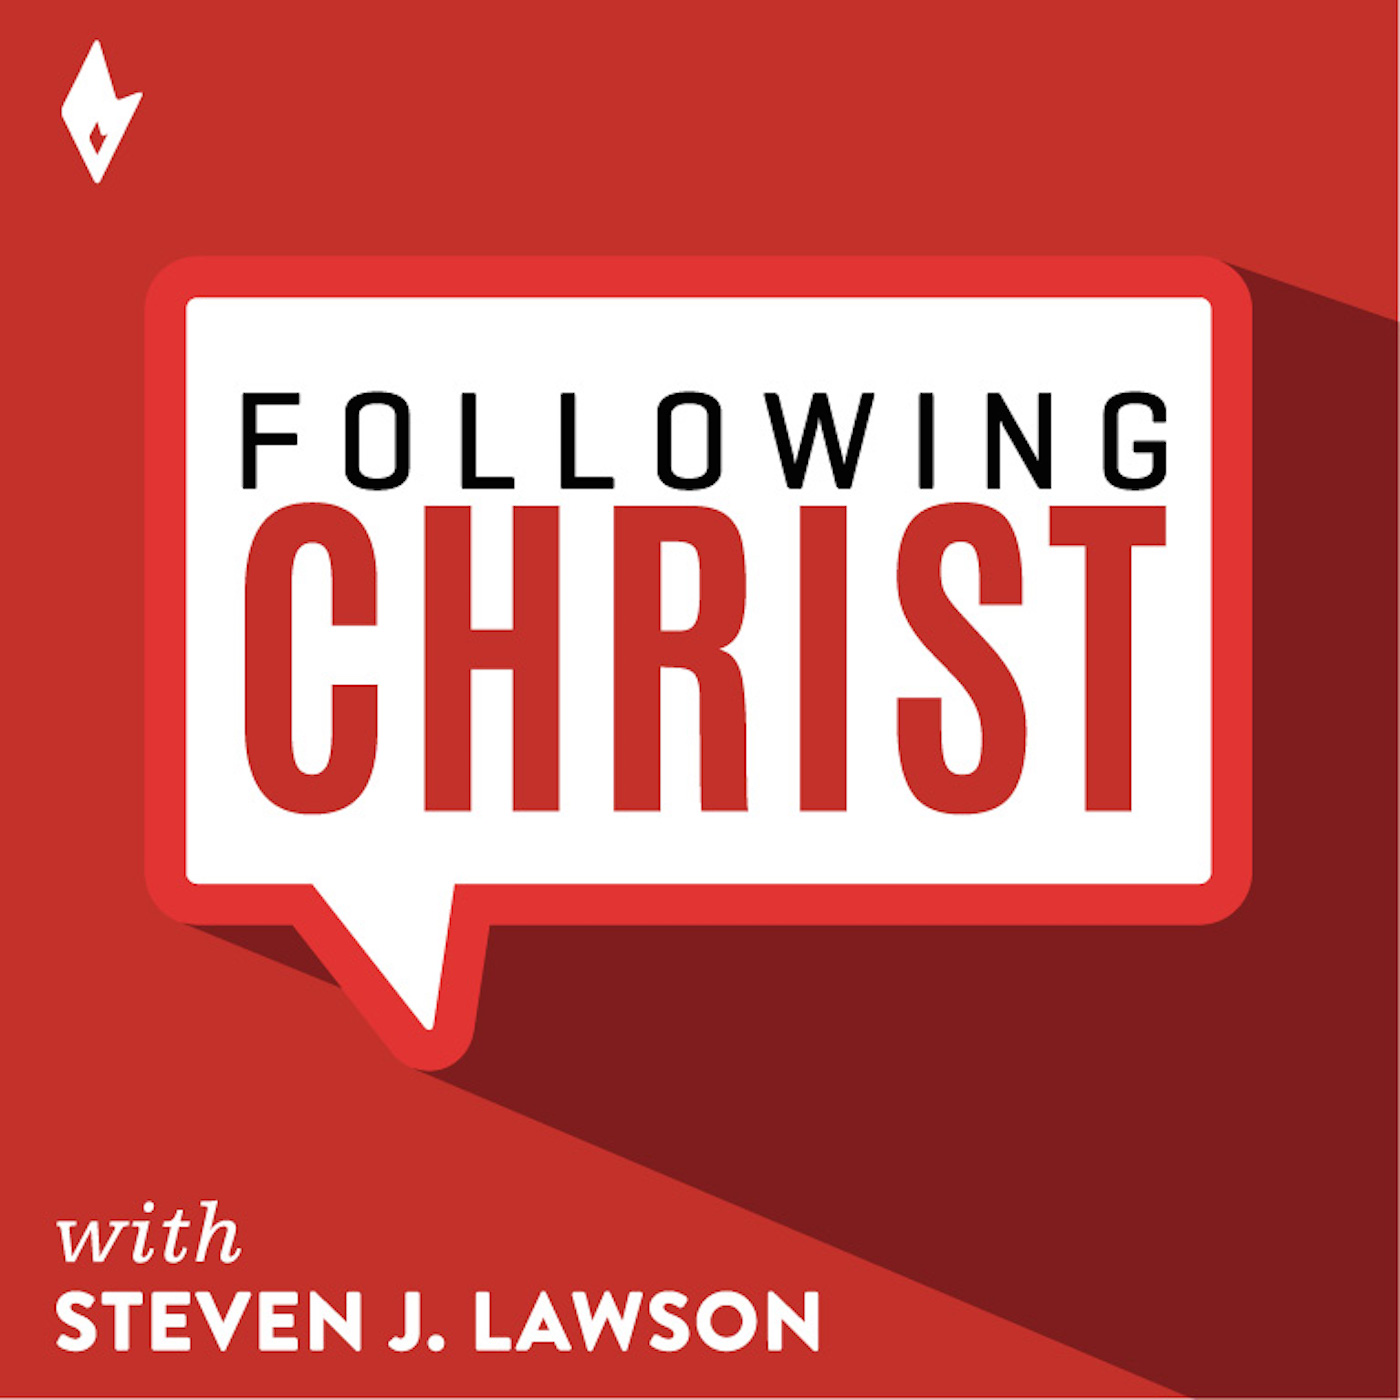 Following Christ - OnePassion Ministries